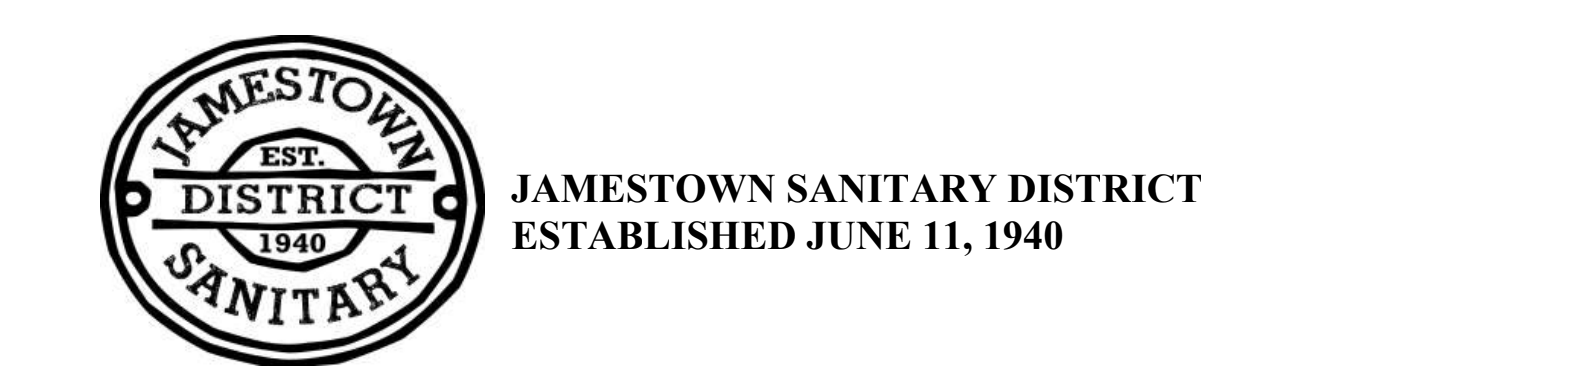 Jamestown Sanitary District